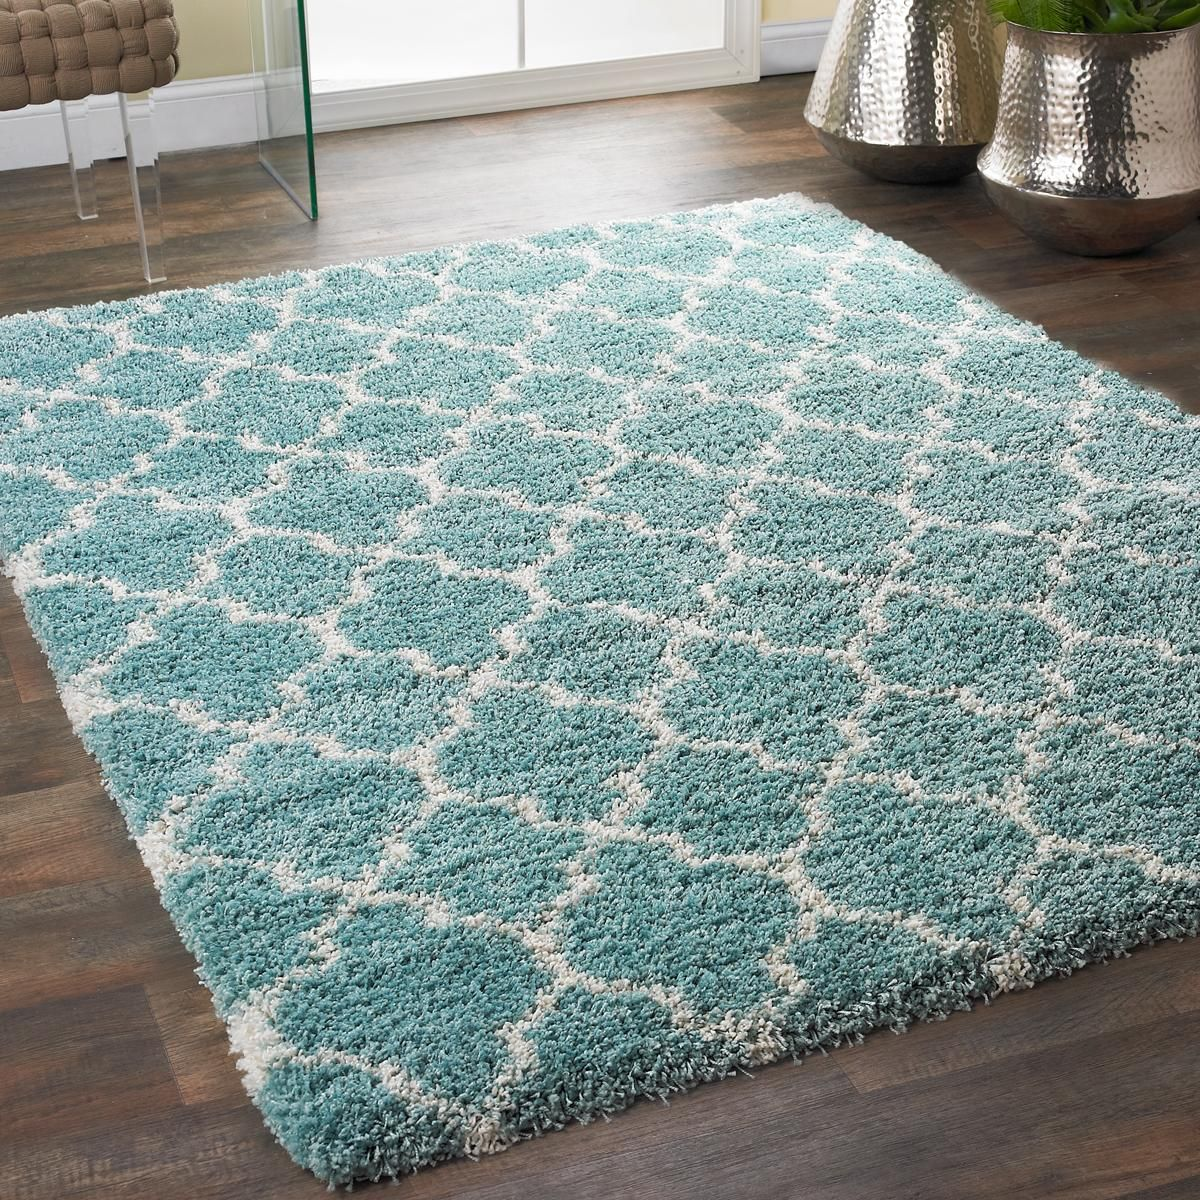 Lofty Trellis Plush Area Rug Plush Area Rugs And Trellis